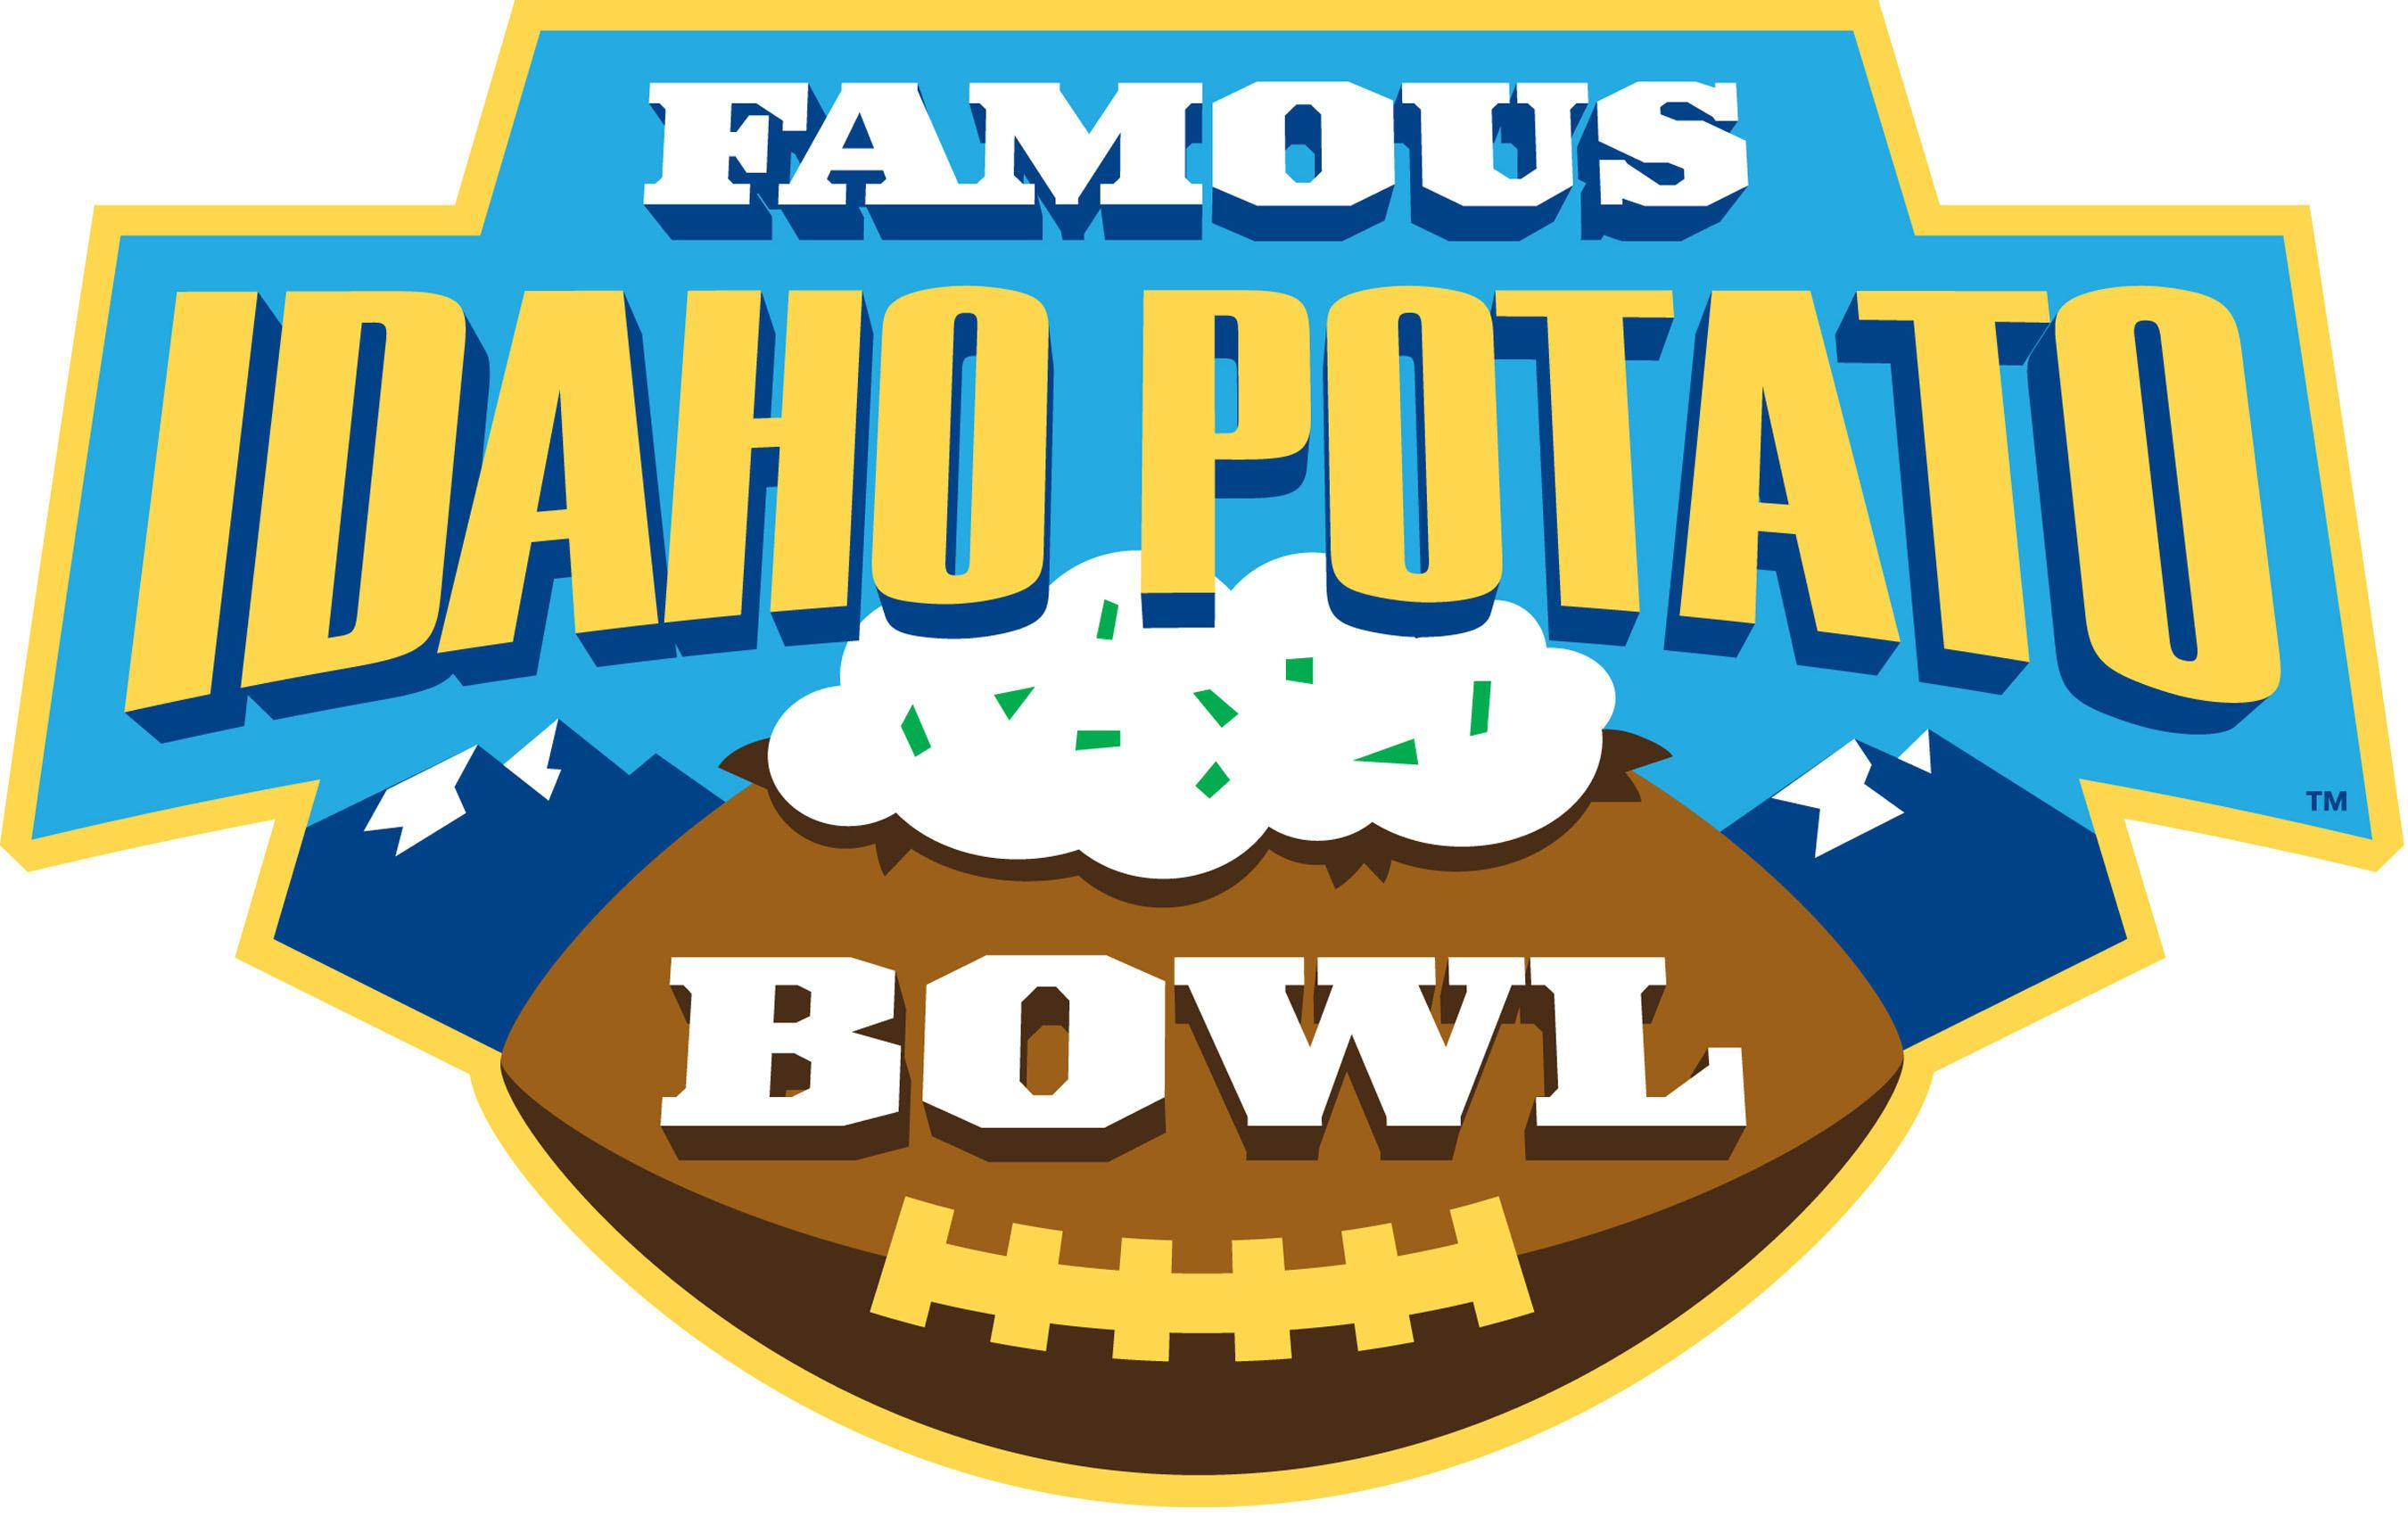 The Famous Idaho Potato Bowl Logo Artfully Combines Football And Potatoes With A